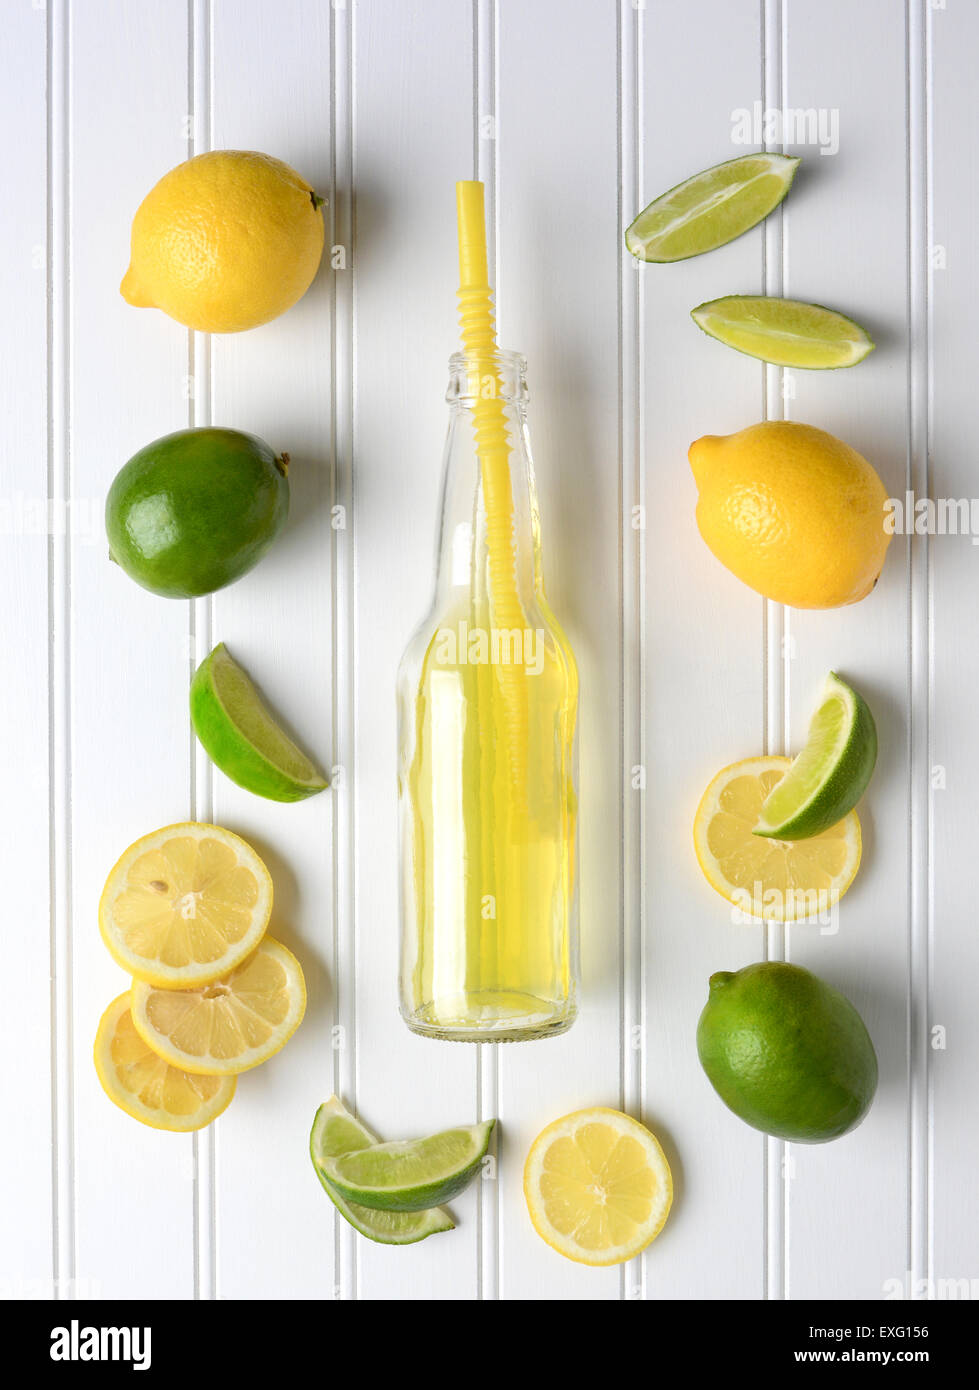 Limes and Lemons surrounding a bottle of soda on a white bead board table. High angle shot in vertical format. - Stock Image